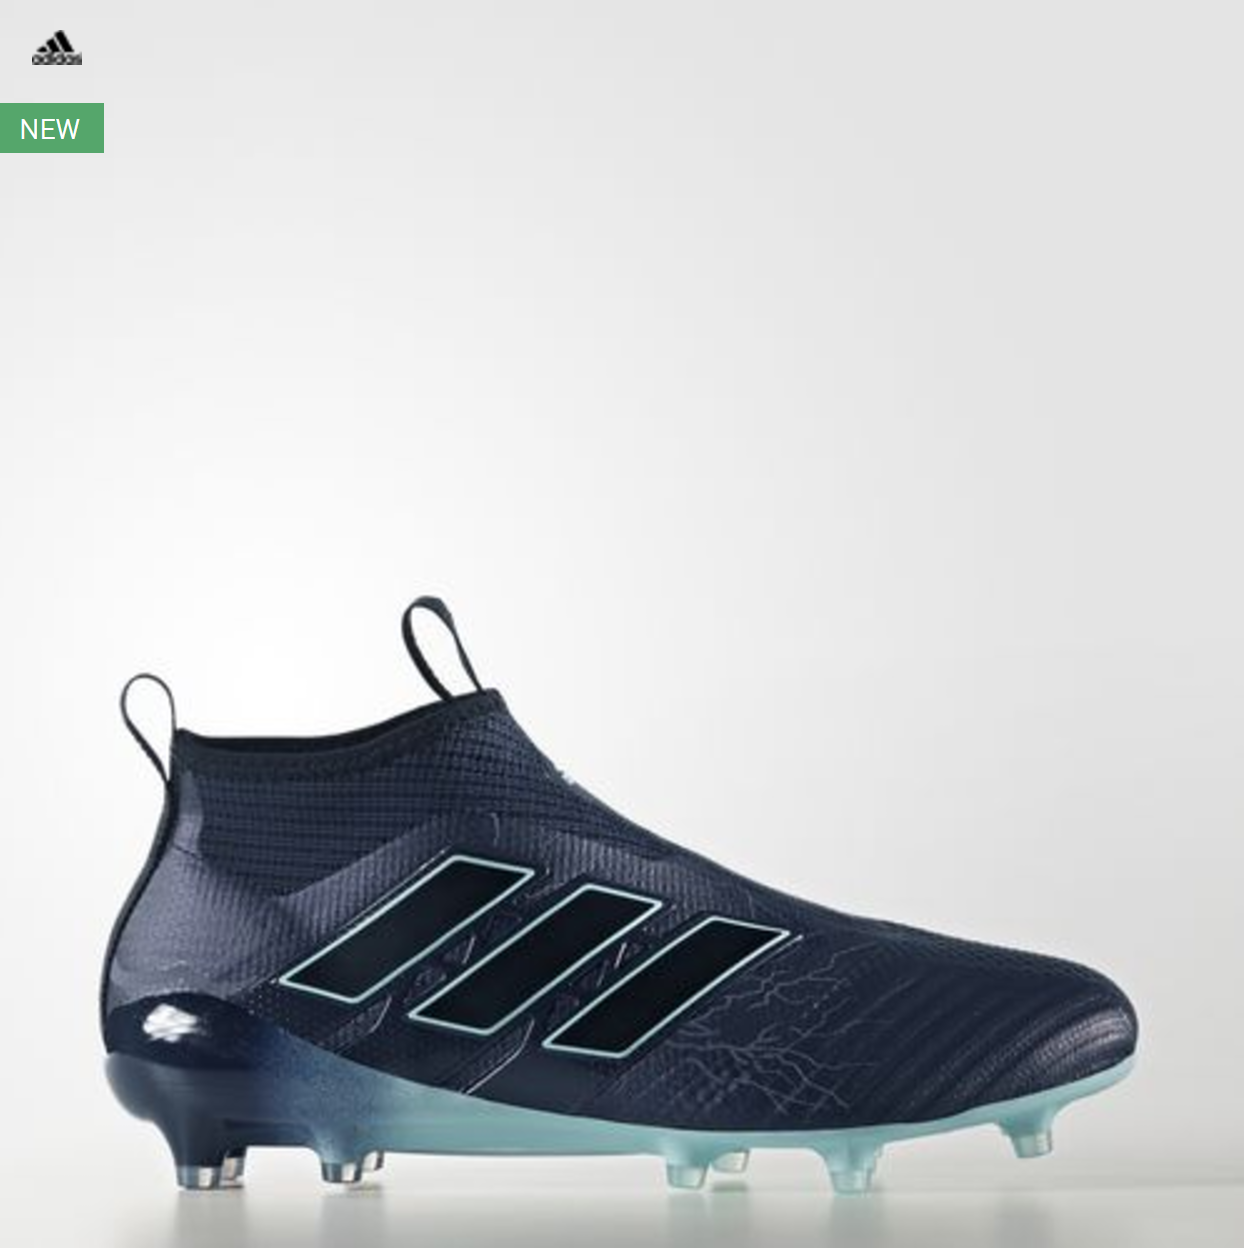 adidas Ace 17+ Purecontrol FG Football Boots